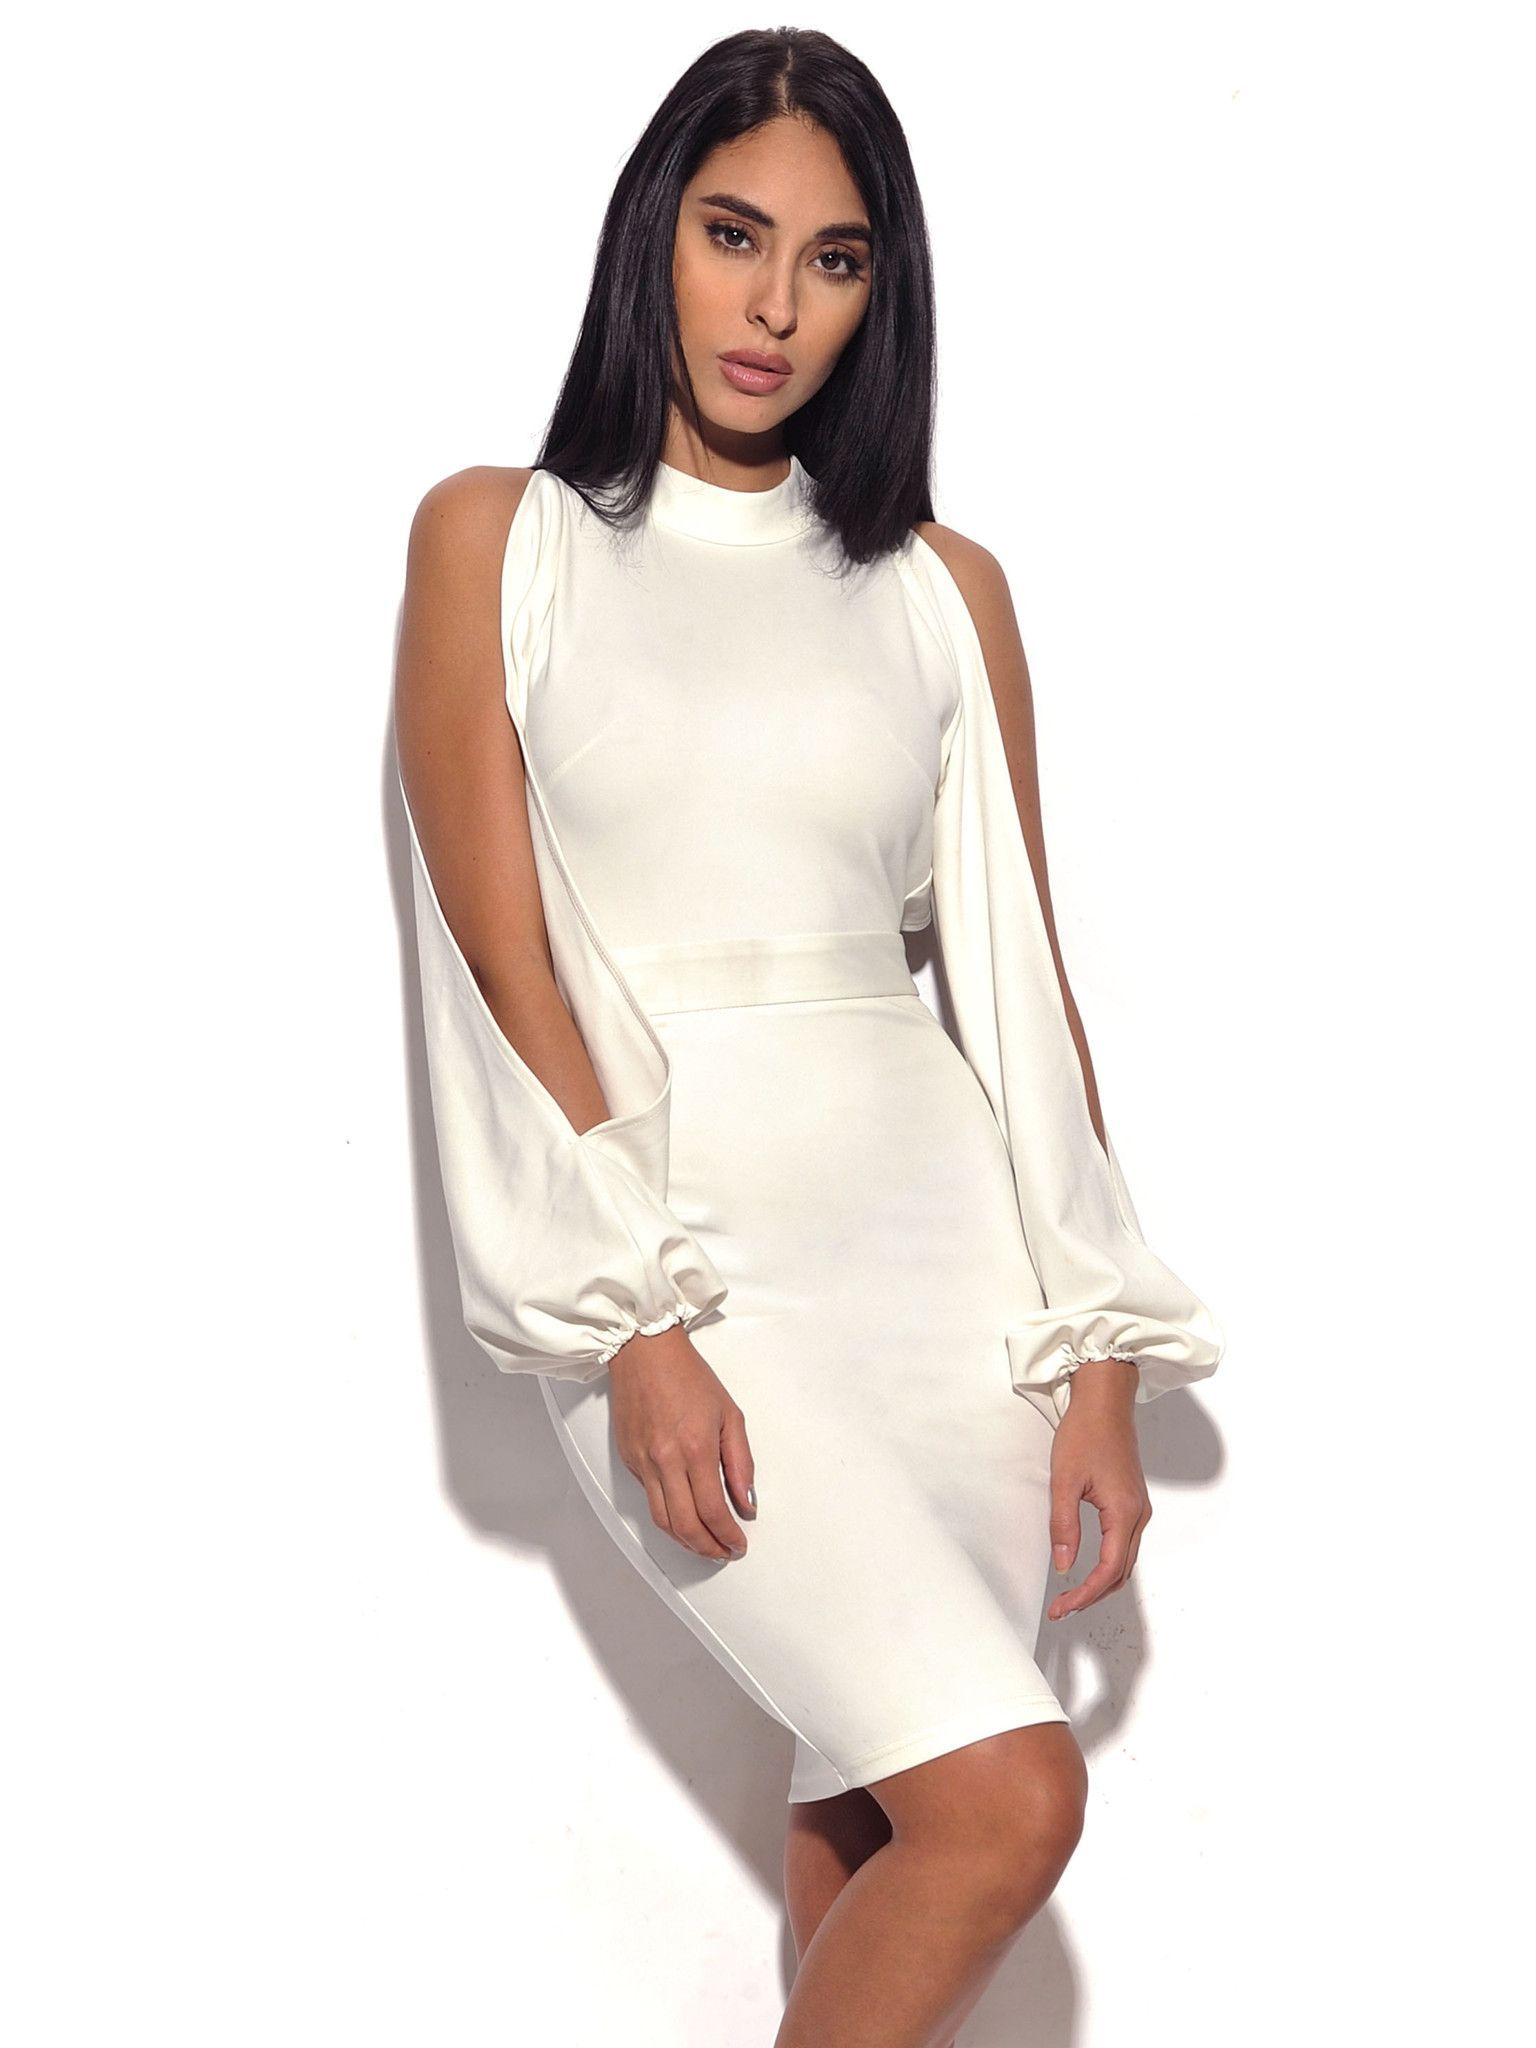 f4aff960e5 This elegant white bodycon dress is perfect for the most upscale events. It showcases  flowy cut out sleeves leading to a high neck and open back.